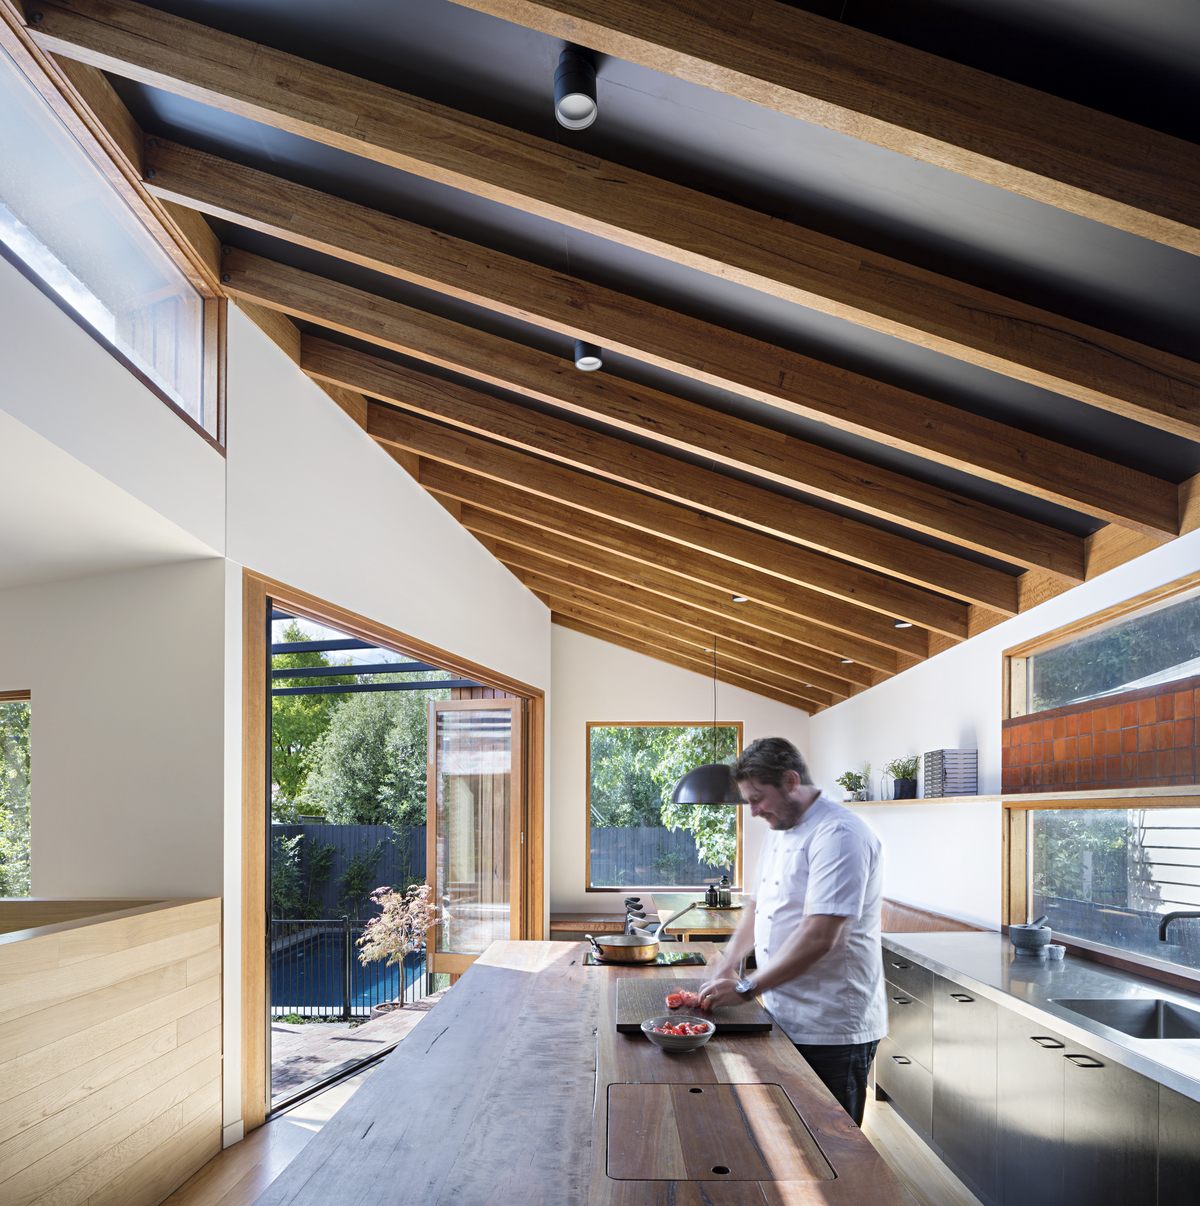 Take a Look at the Kitchen of This Renowned Chef and Restaurateur